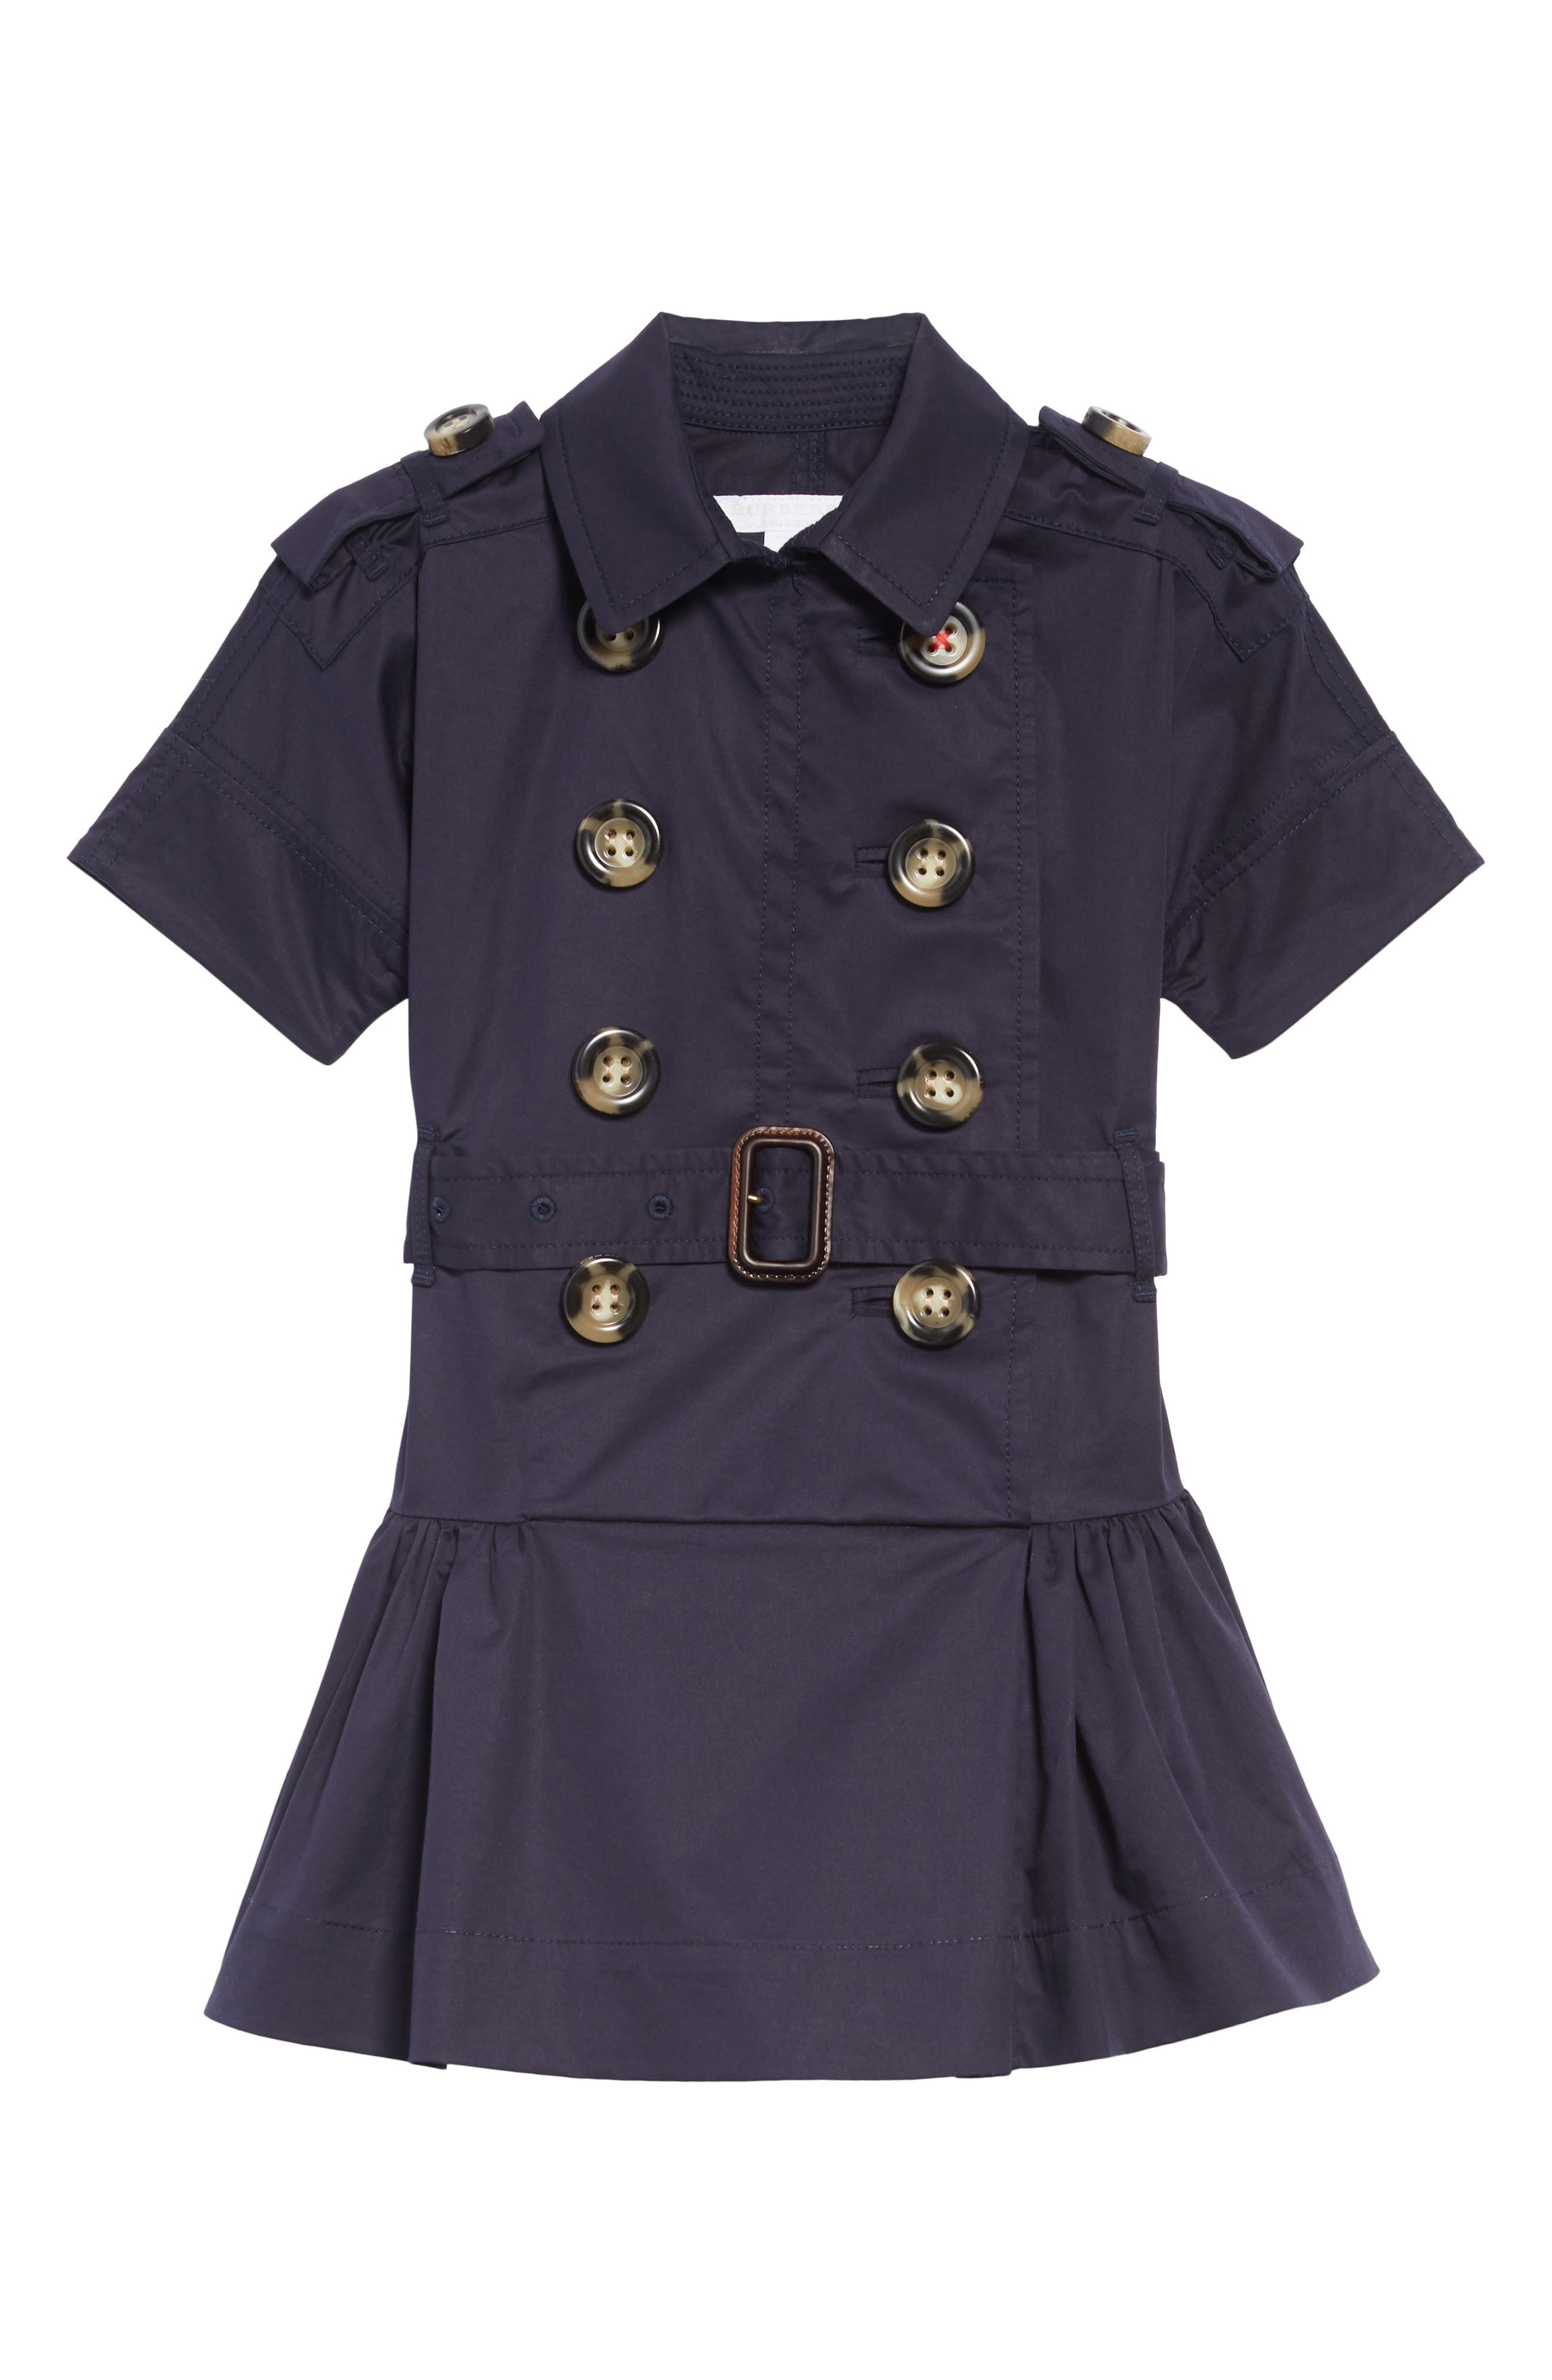 BURBERRY, Cynthie Stretch Cotton Trench Dress, Main thumbnail 1, color, MIDNIGHT